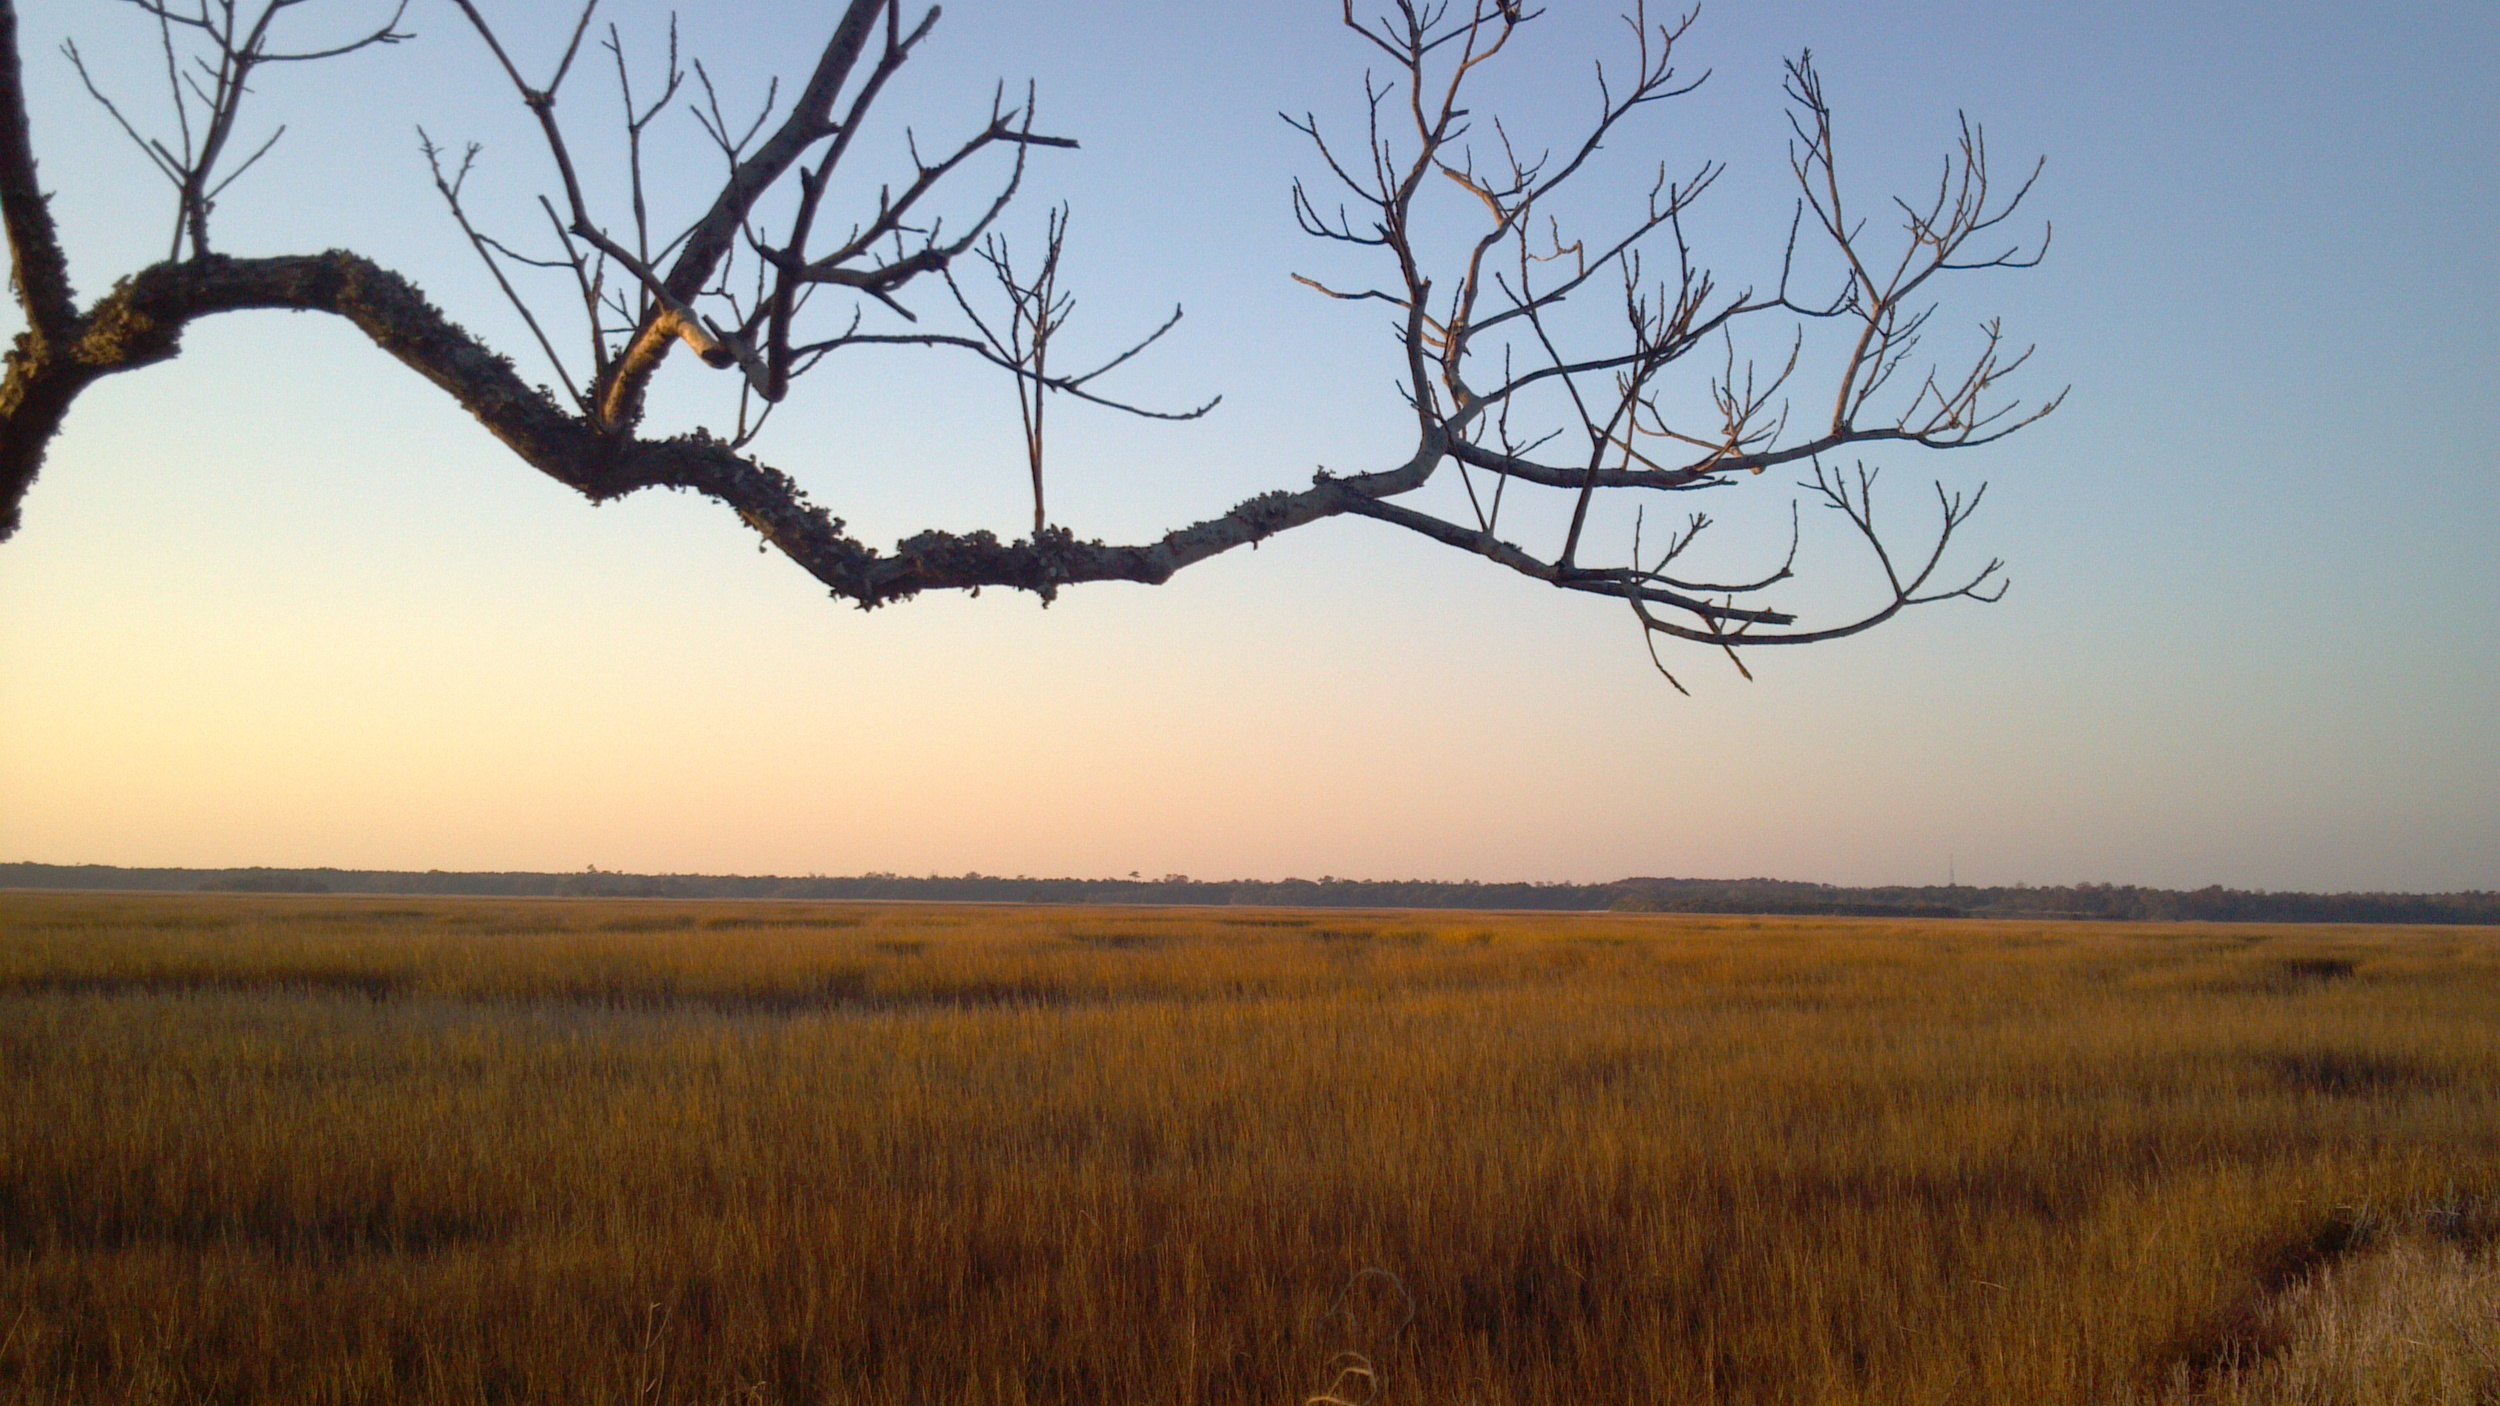 Coastal wetlands in Pender County, North Carolina